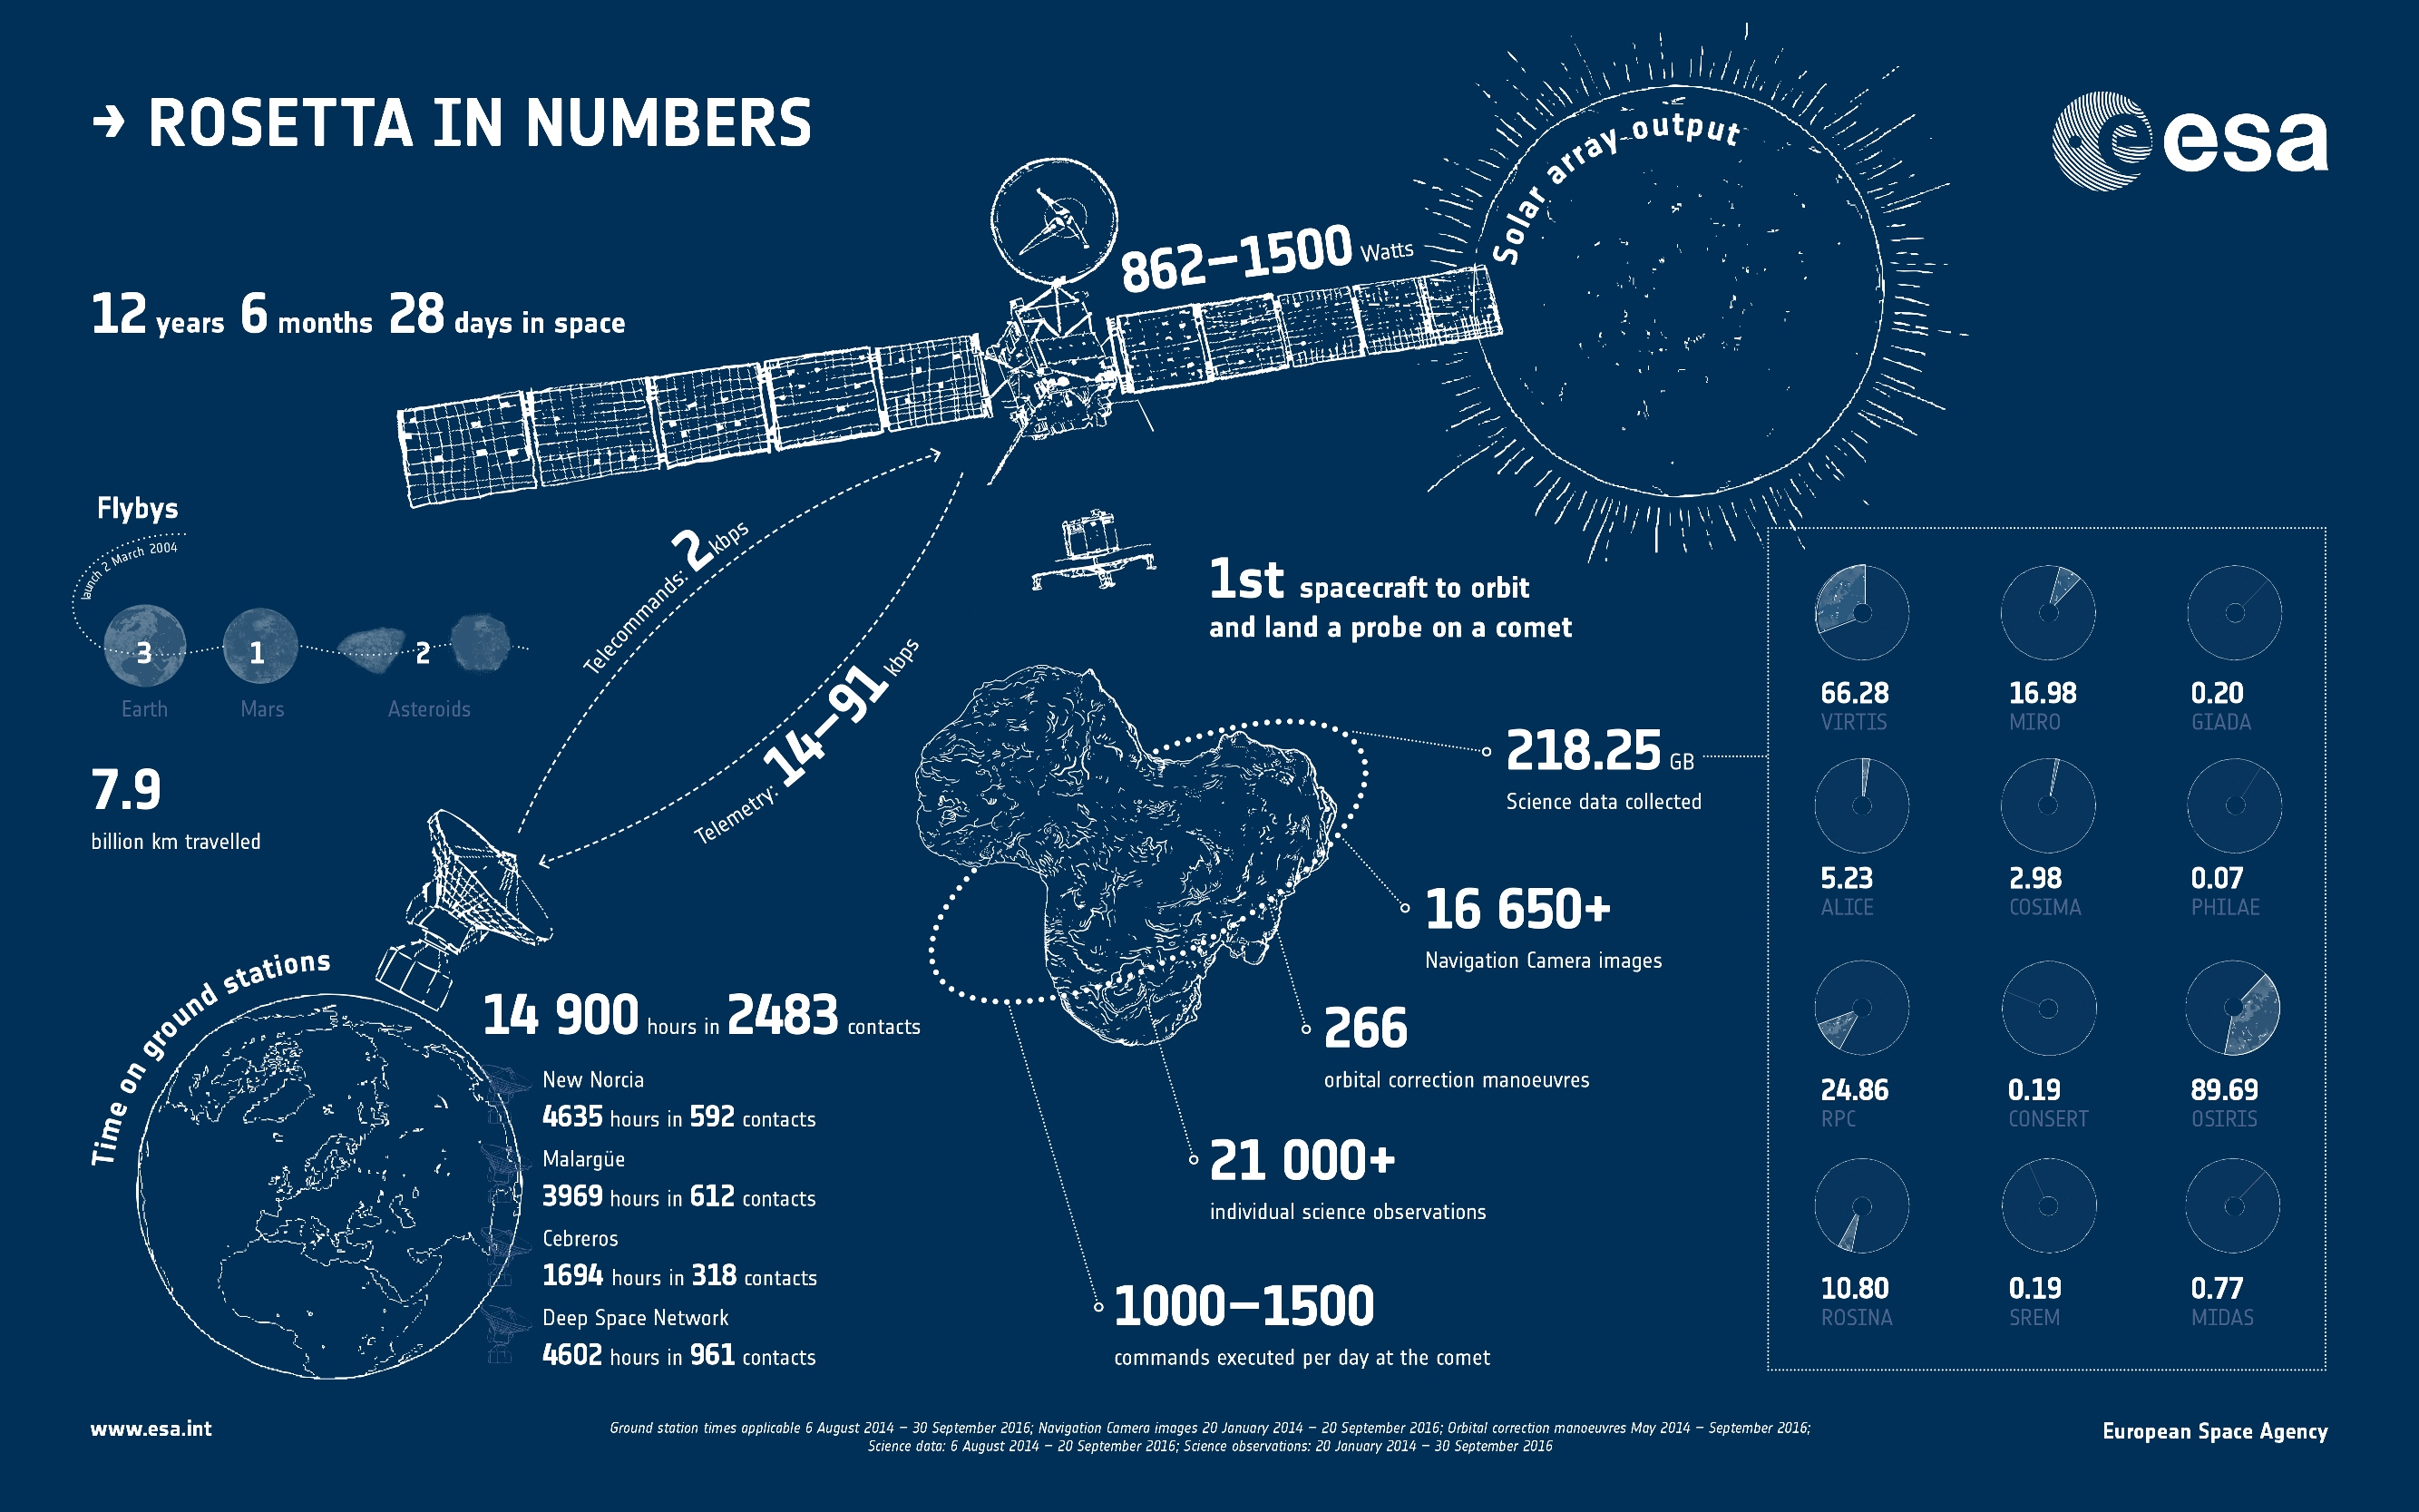 Rosetta - Bilan - Facts and figures - Faits et chiffres - In a nutshell - Donnees transmises - ESA - Instruments